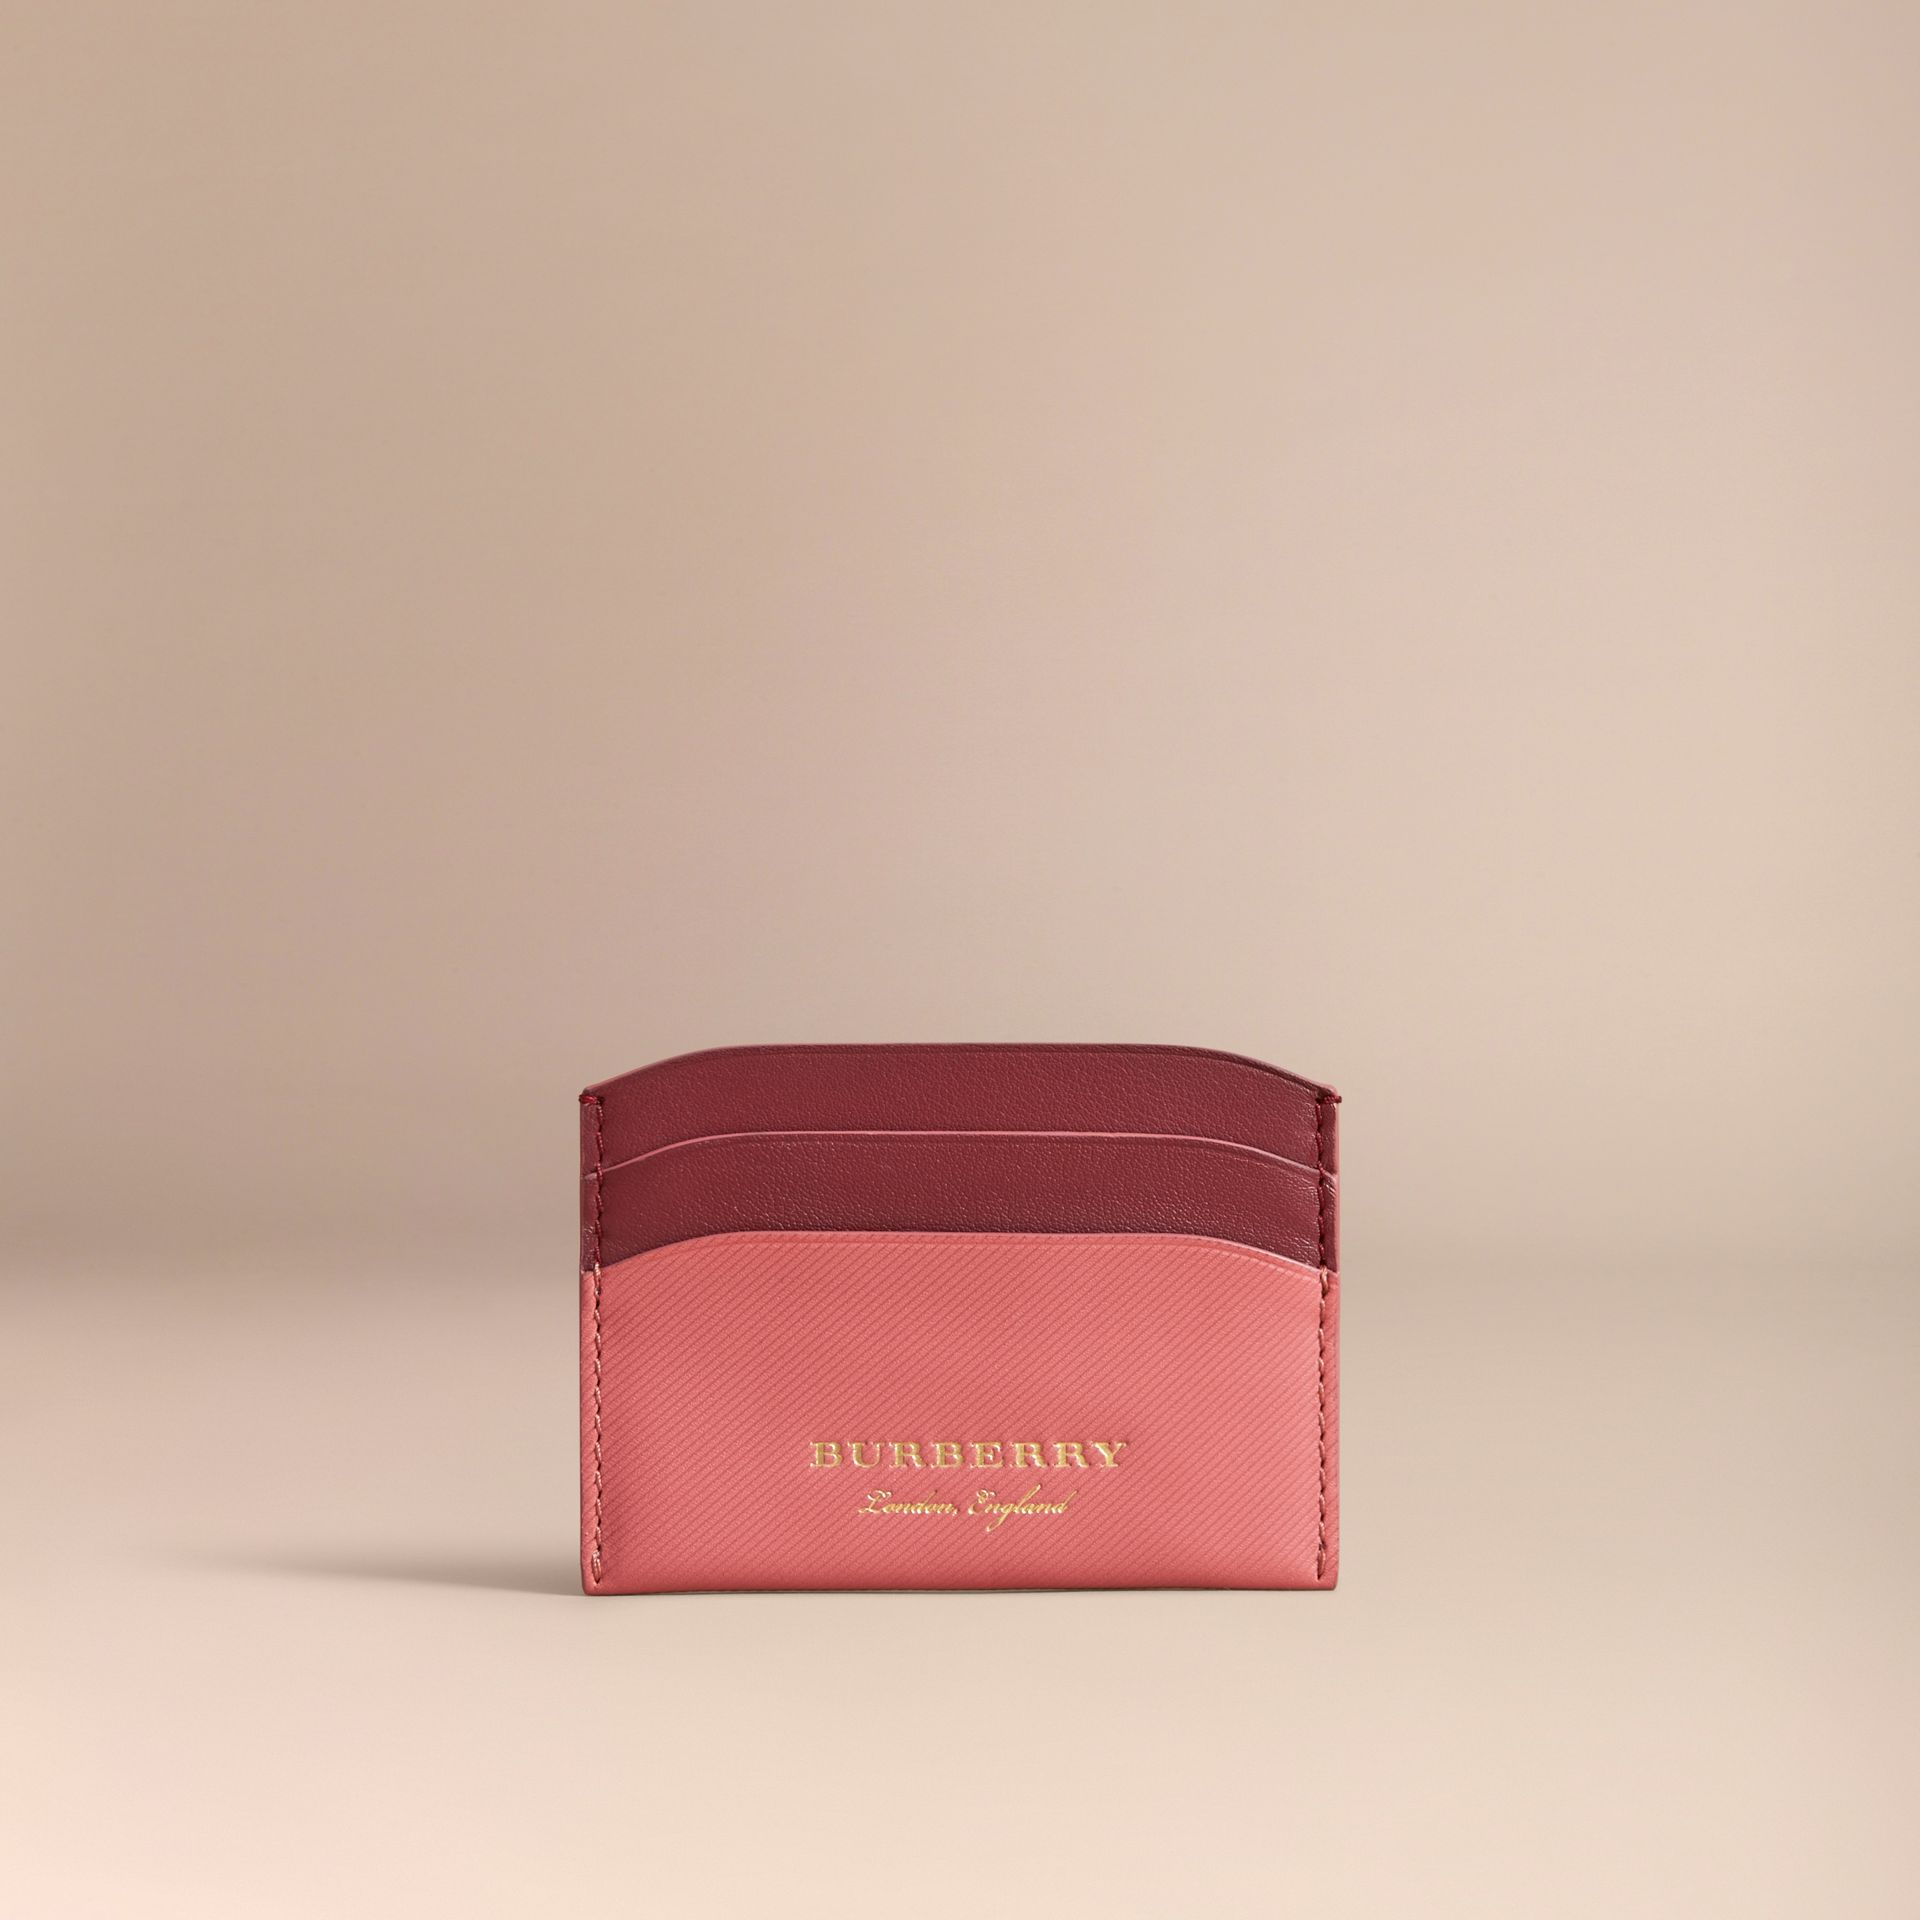 Two-tone Trench Leather Card Case in Blossom Pink/ Antique Red | Burberry - gallery image 4